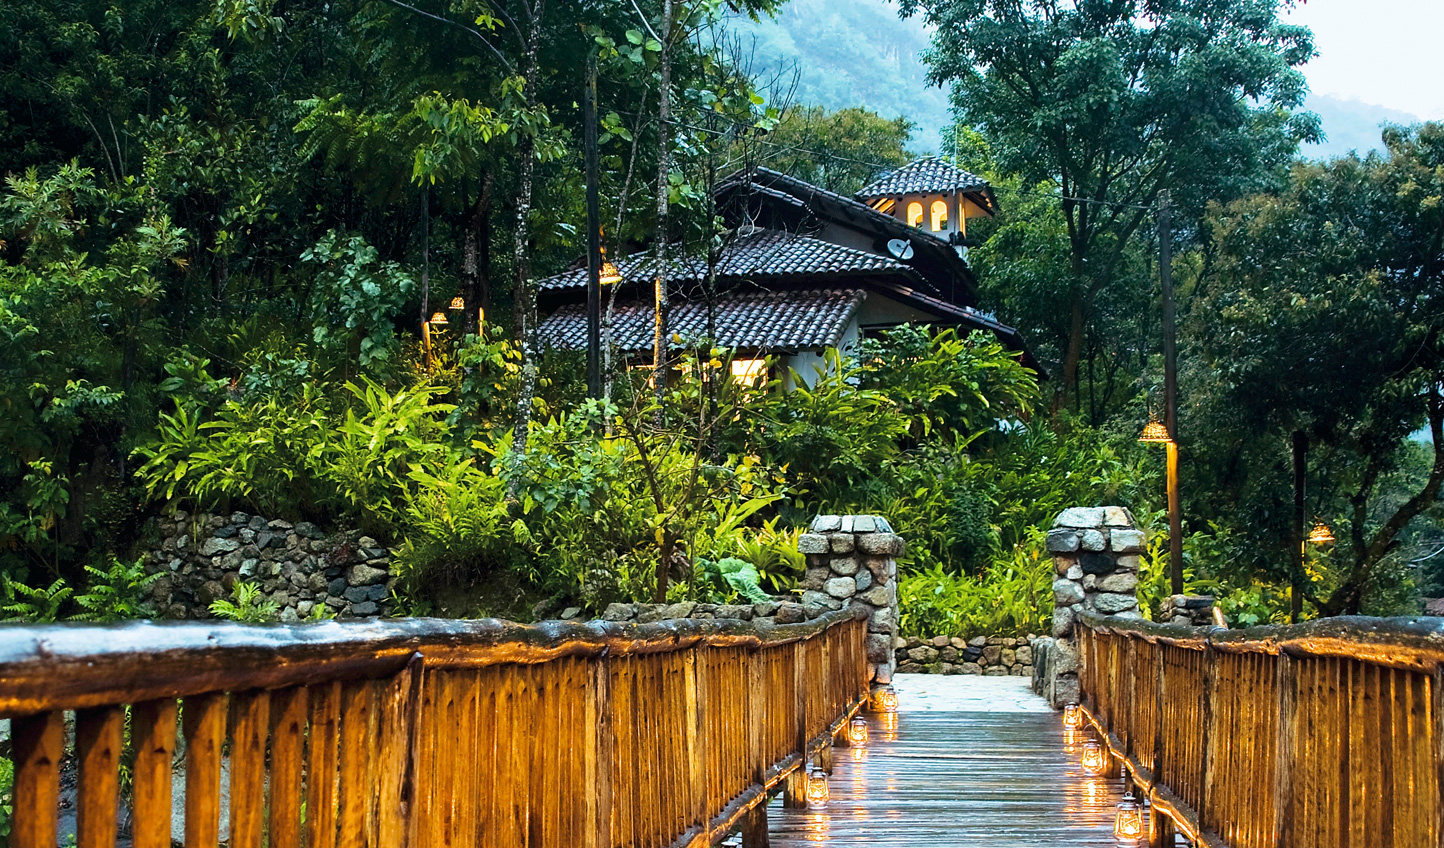 Arrive to secluded luxury at Inkaterra Machu Picchy